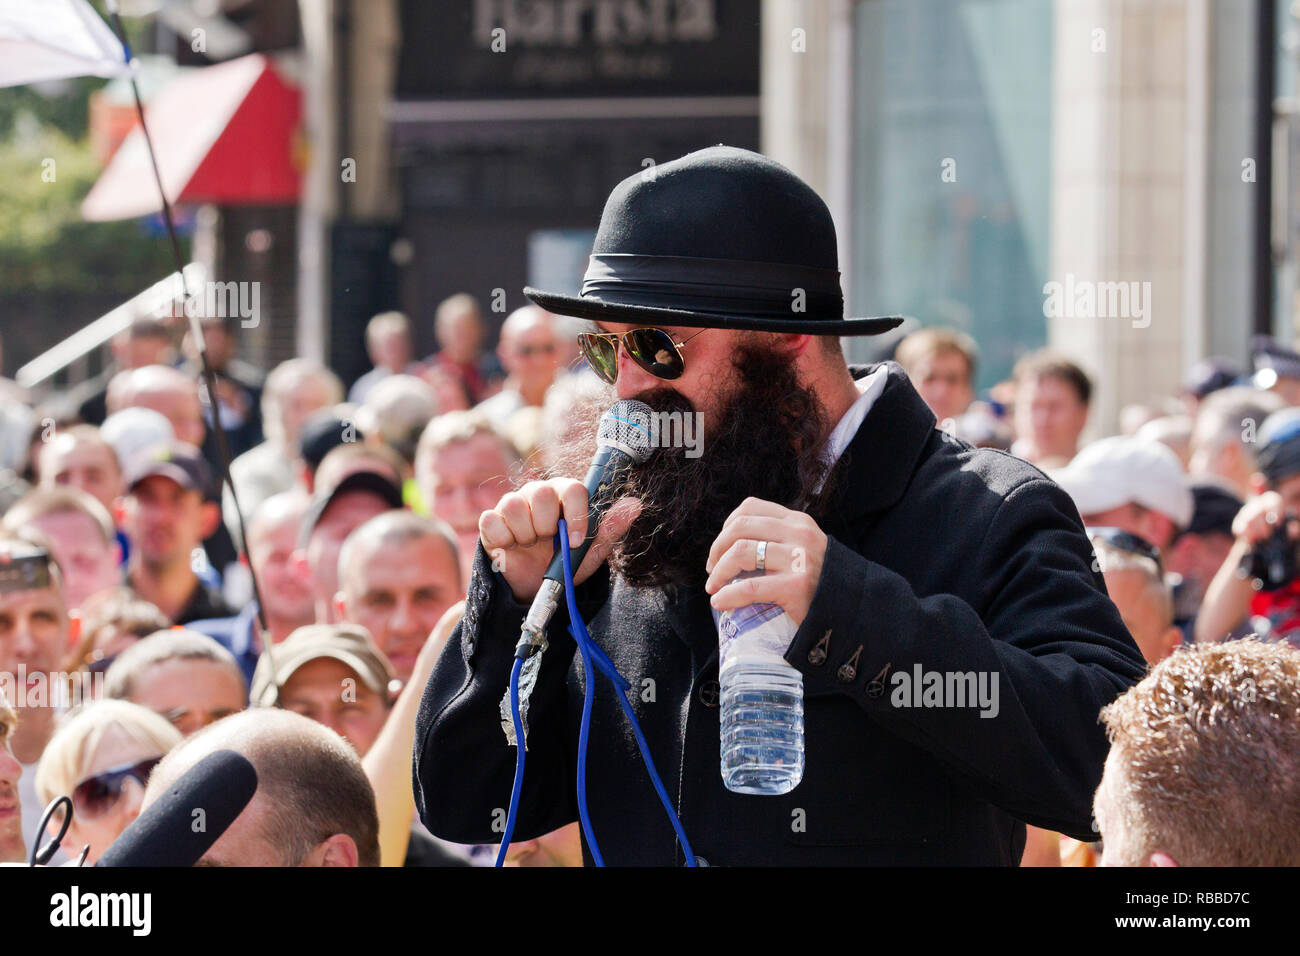 EDL leader Tommy Robinson, dressed as a rabbi, at a demonstration in Tower Hamlets, East London. 3.11.2011. - Stock Image